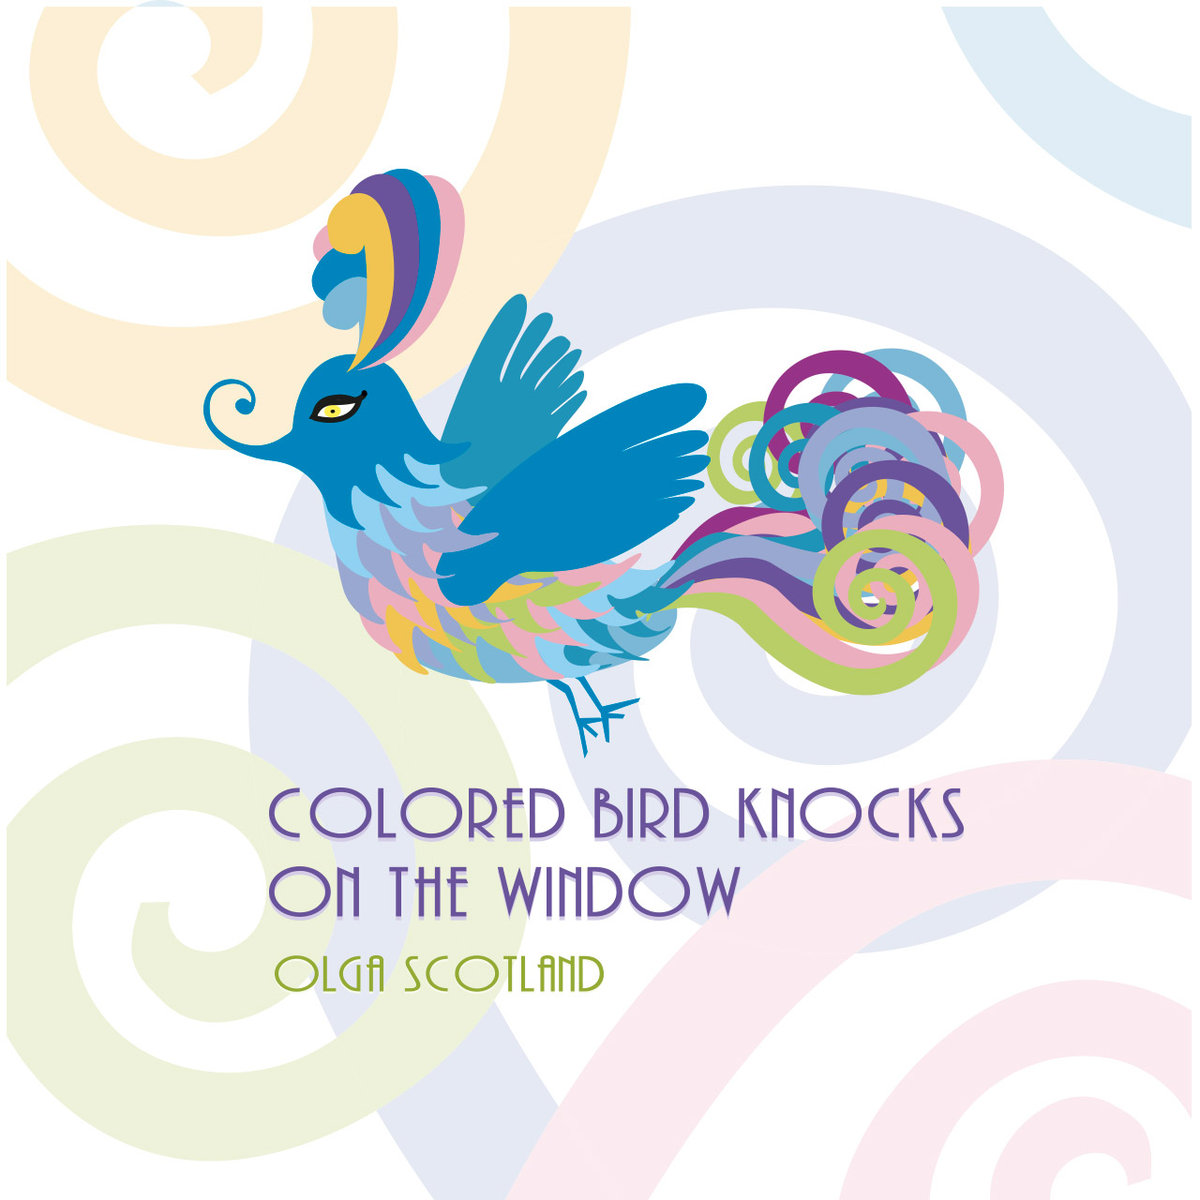 Olga Scotland - Dragon Flight @ 'Colored Bird Knocks On The Window' album (soundtrack, ambient)